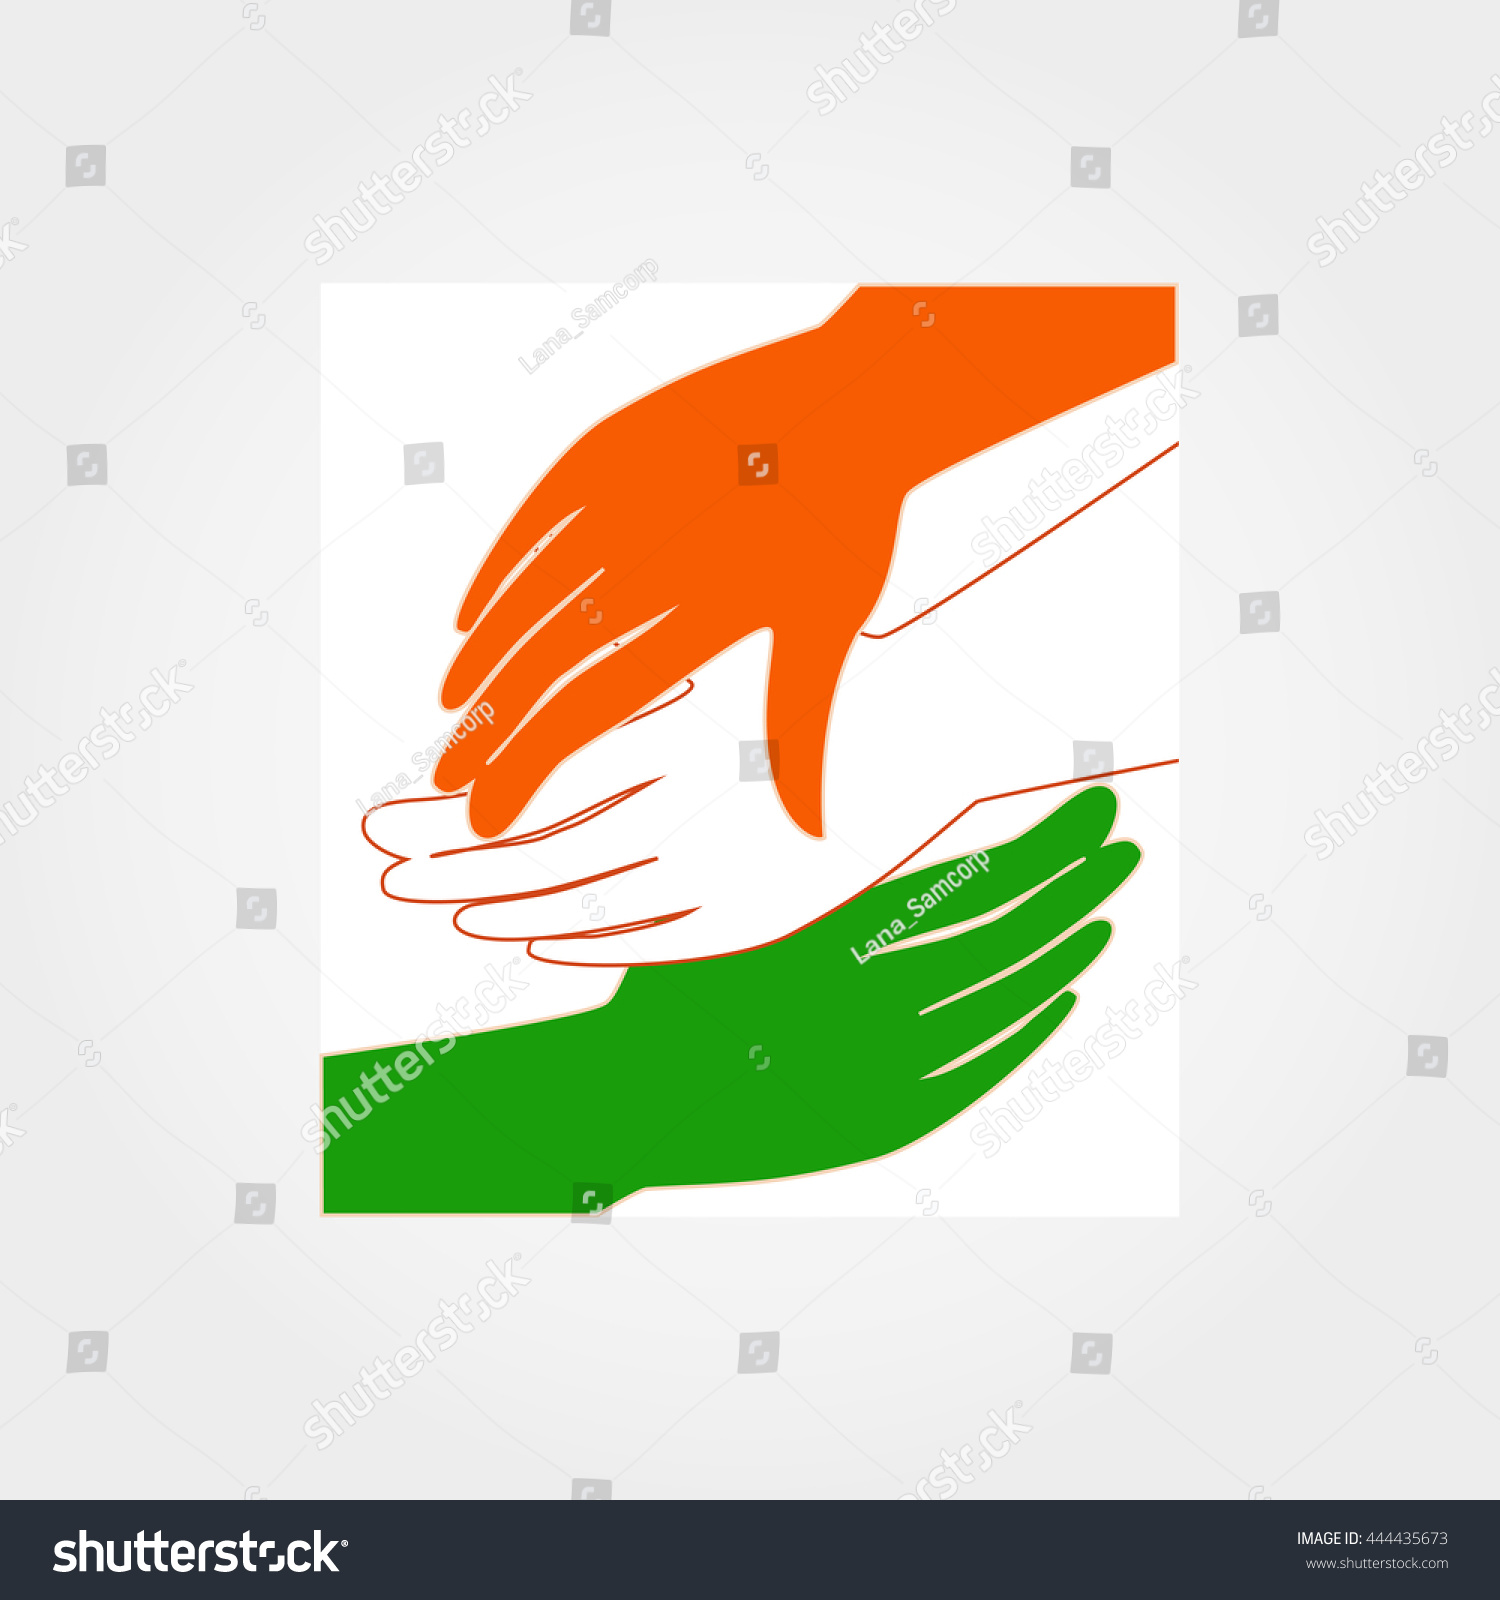 the similarities in the culture of pride and patriotism in all colonies Download books doc/mmf/american cultural values , download books doc/mmf/american cultural values online , download books doc/mmf/american cultural values pdf.